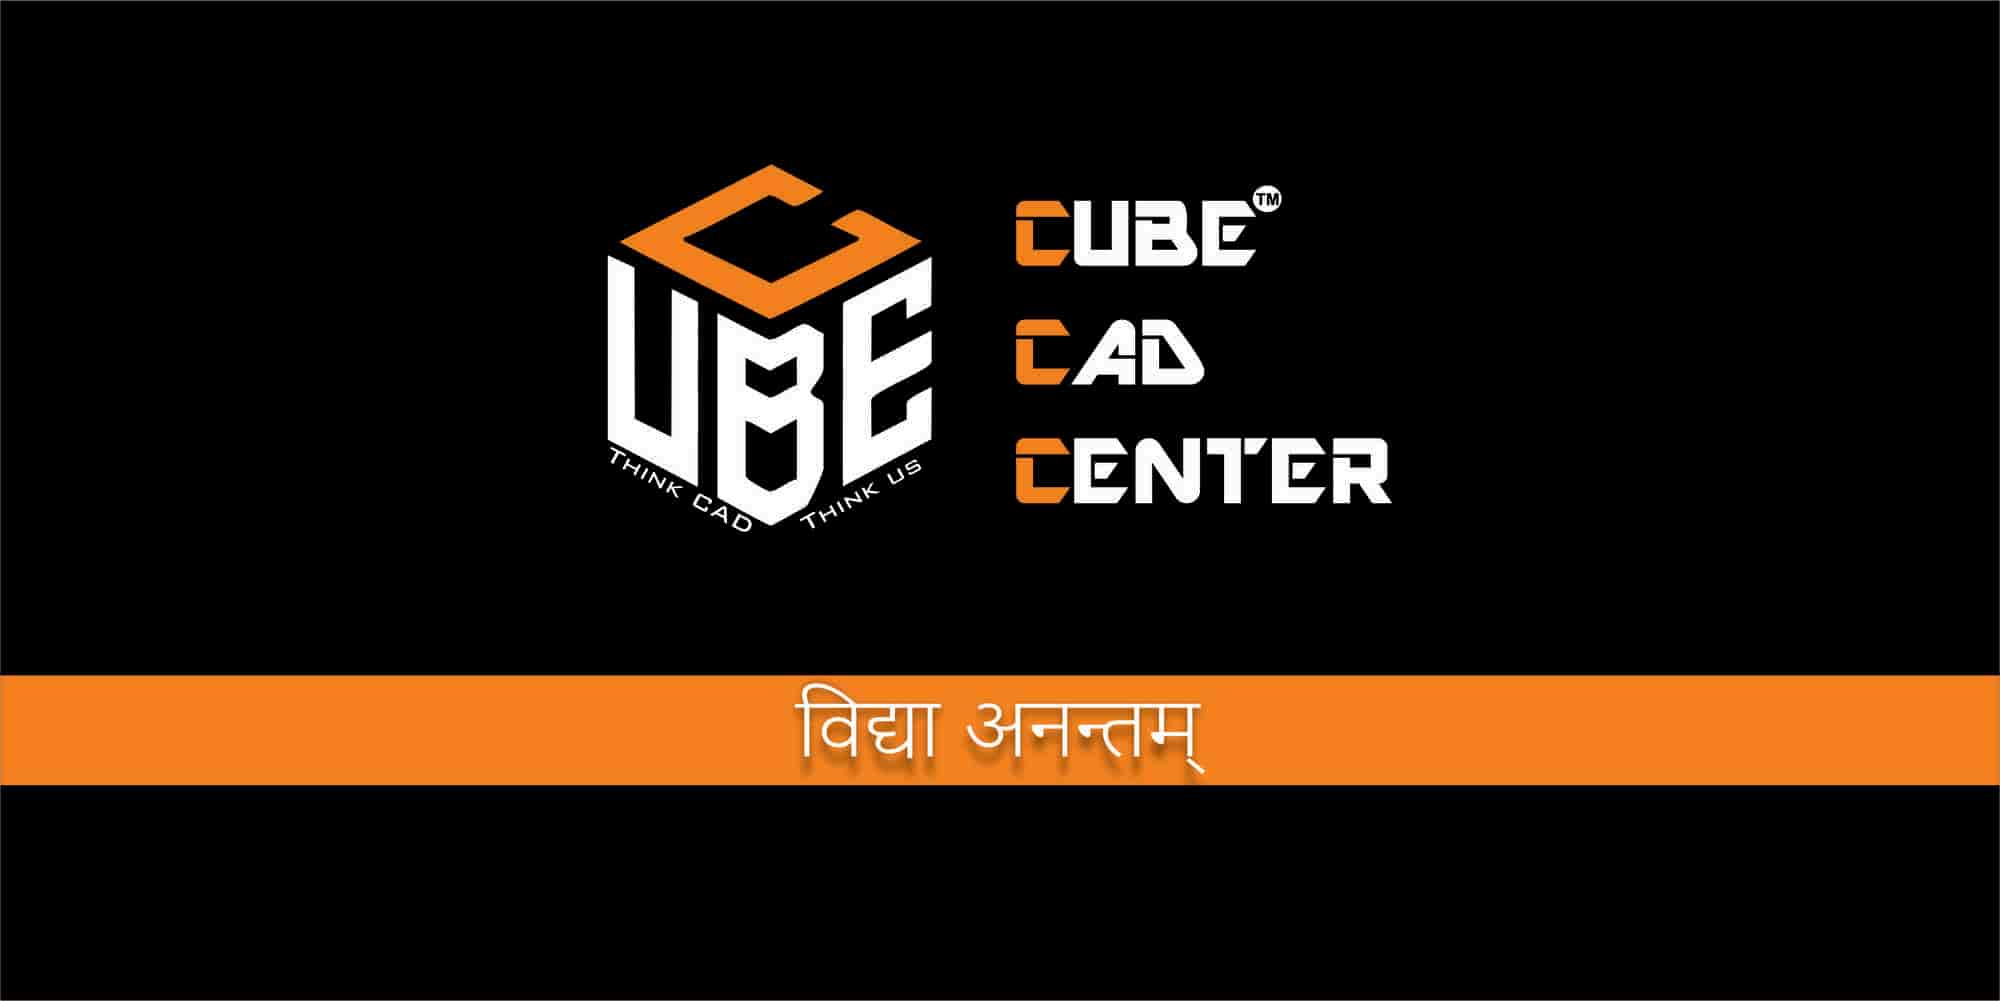 Cube Cad Center Satellite, Satellite, Ahmedabad - CAD